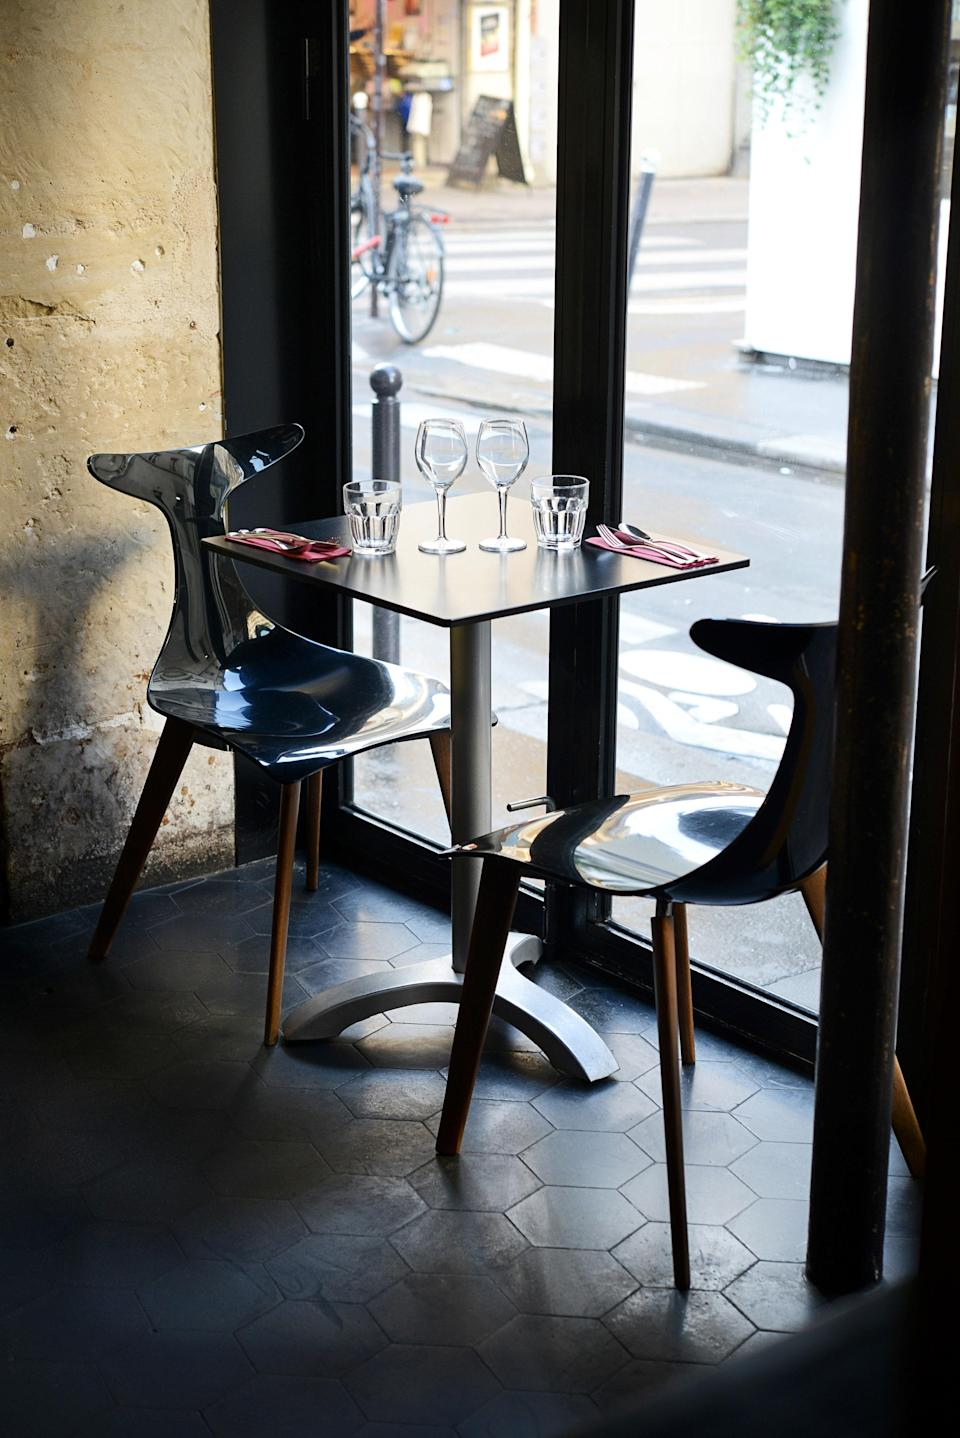 """<p><strong>Tell us about your first impressions when you arrived.</strong><br> This is an industrial sleek, mostly counter-top dining room on a bustling corner of rue Oberkampf in the 11th. The counter is absolutely the place to sit because it puts clients in front of the open kitchen where a team of Pierre Sang's chefs prepare each dish from the surprise tasting menu. For bigger groups, there are seats downstairs among Sang's impressive wine collection. His second restaurant a few doors down on rue Gambey, has a more brick-loft vibe, more seating, and a communal table upstairs that can be reserved for private parties and groups.</p> <p><strong>What was the crowd like?</strong><br> A curious group of diners, open to the PS experience which is to say, bright, bold flavors and a mix of modern French cooking with Asian inflections (expect kimchi to make an appearance). International travelers know it's a major food destination but on average, you'll be alongside Parisians with a refined palate.</p> <p><strong>What should we be drinking?</strong><br> Focus on wine here, and go for the wine pairing for $6 more (per course).</p> <p><strong>Main event: the food. Give us the lowdown—especially what not to miss.</strong><br> Each dish is creative, unexpected, and full of diverse flavors—some totally new to Parisian tastes (especially the Korean touches the chef and his team are likely to fold into the mix). A sauté of pork and white beans in a tomato sauce topped with anchovies and radishes is both comforting and umami-filled with just the right note of acidity. Dishes are artfully plated and always so fresh. The fish is generally sourced directly across the street from rue Oberkampf's beloved fishmonger and when it ends up on the plate it feels like it came straight from the ocean. Upholding that freshness is important to the chef and that is conveyed clearly in each dish. But unlike so many """"chef-y"""" chefs, they are happy to make adjustments for various intolerances. (No po"""